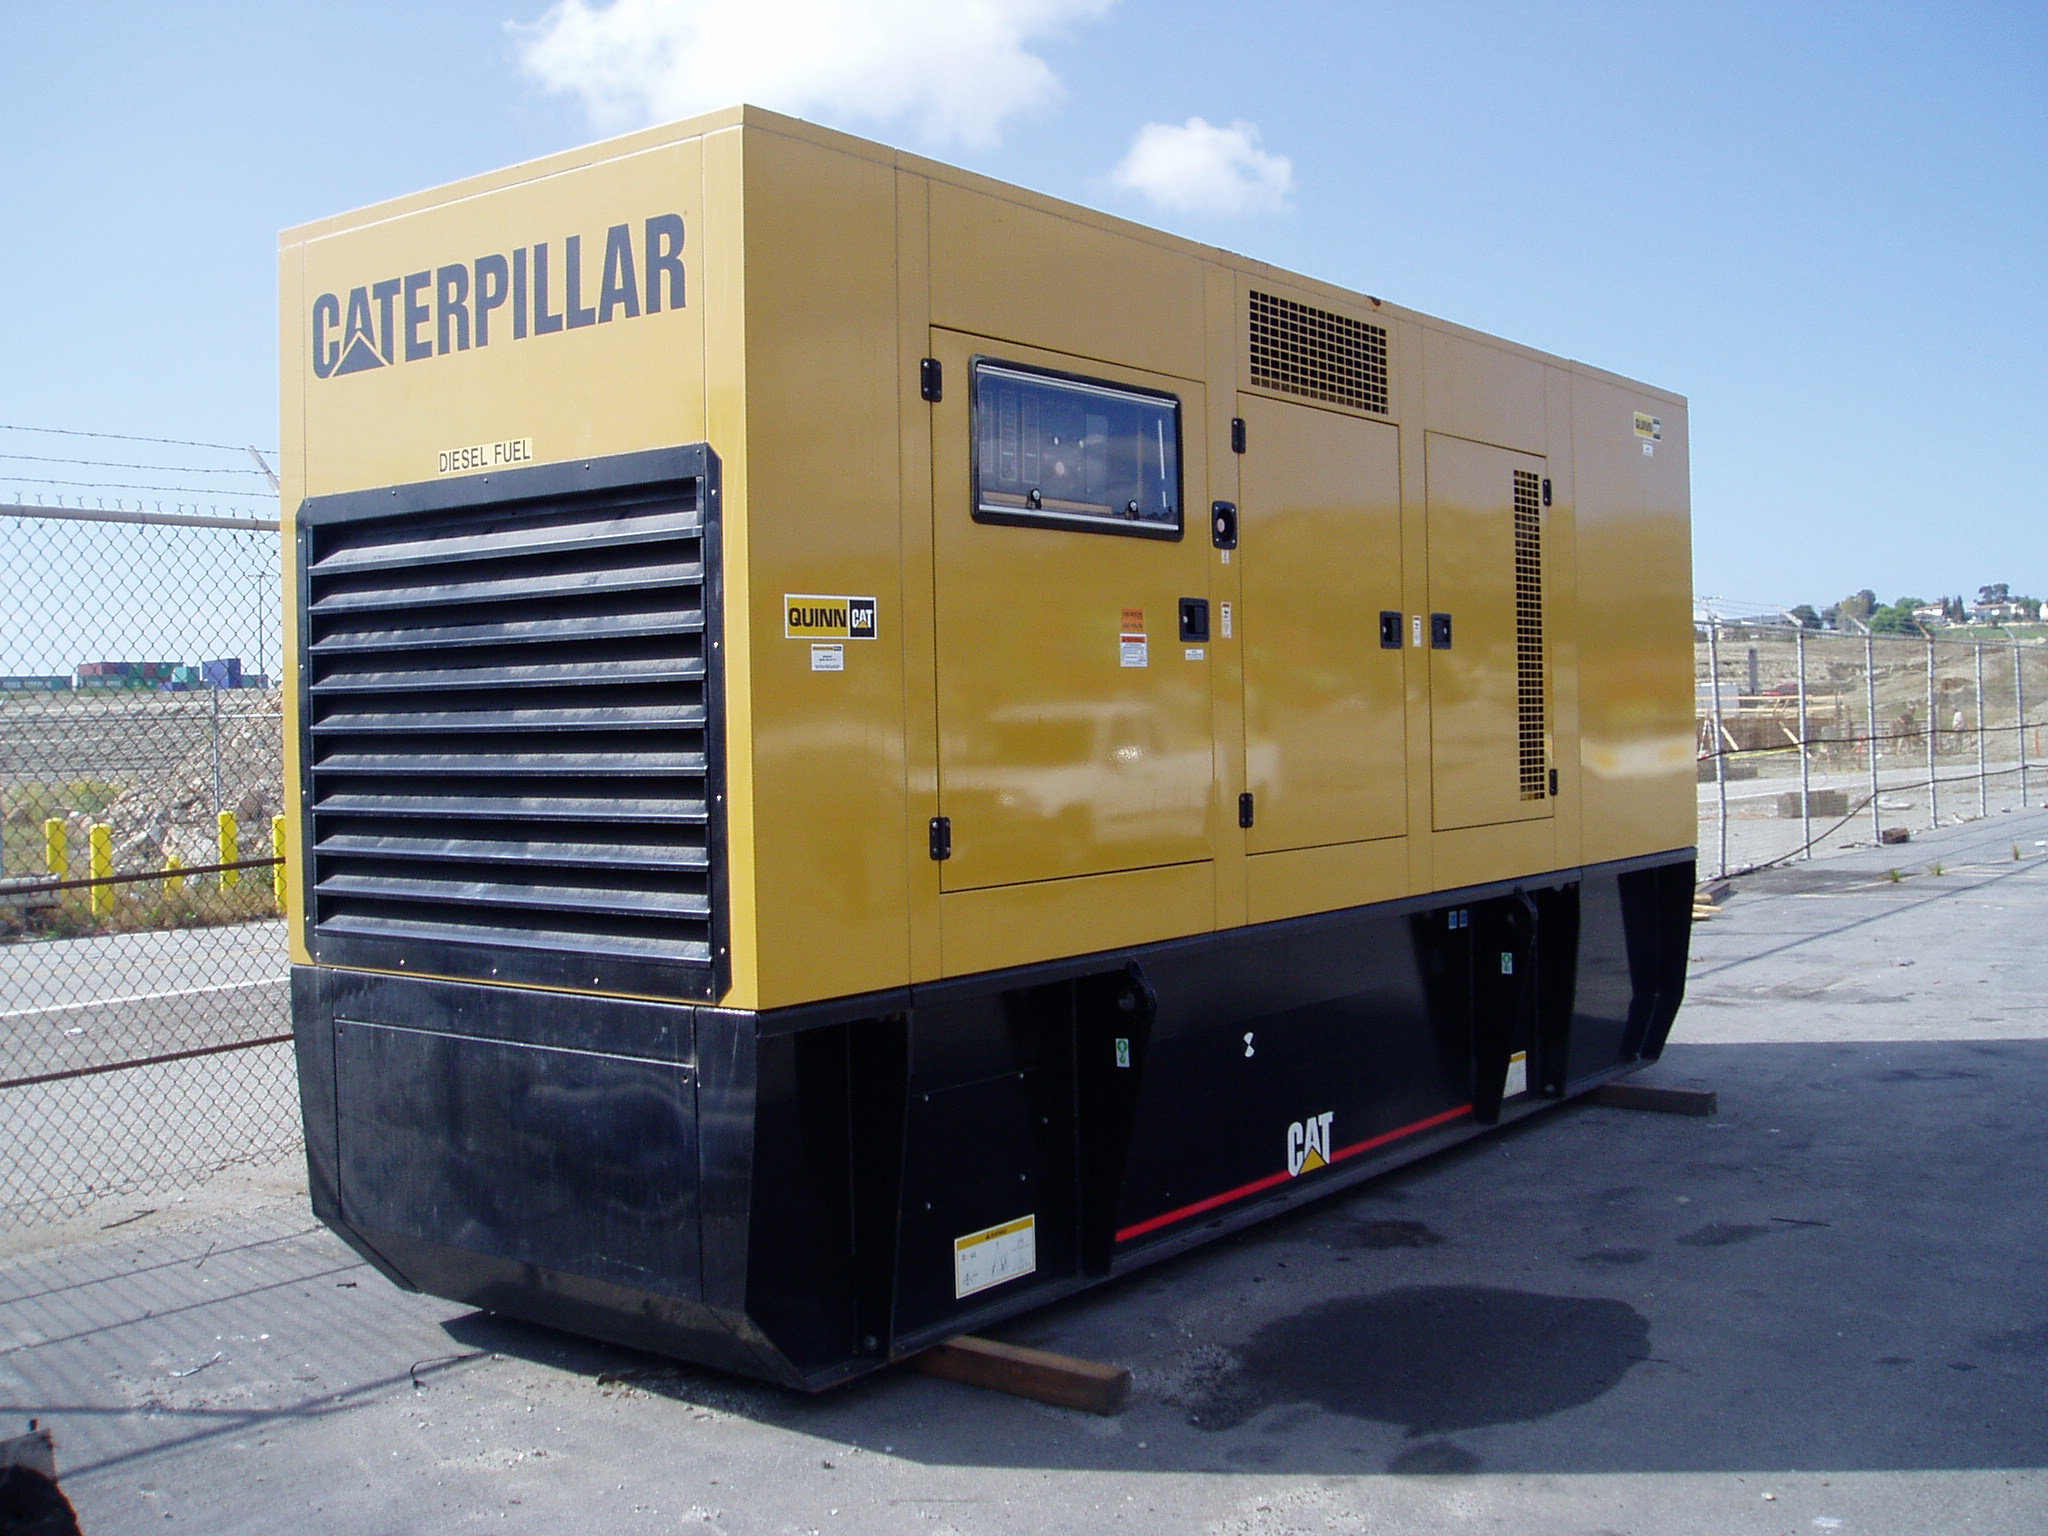 2003 Caterpillar 3456 (Enclosure W/ base tank) Enclosure